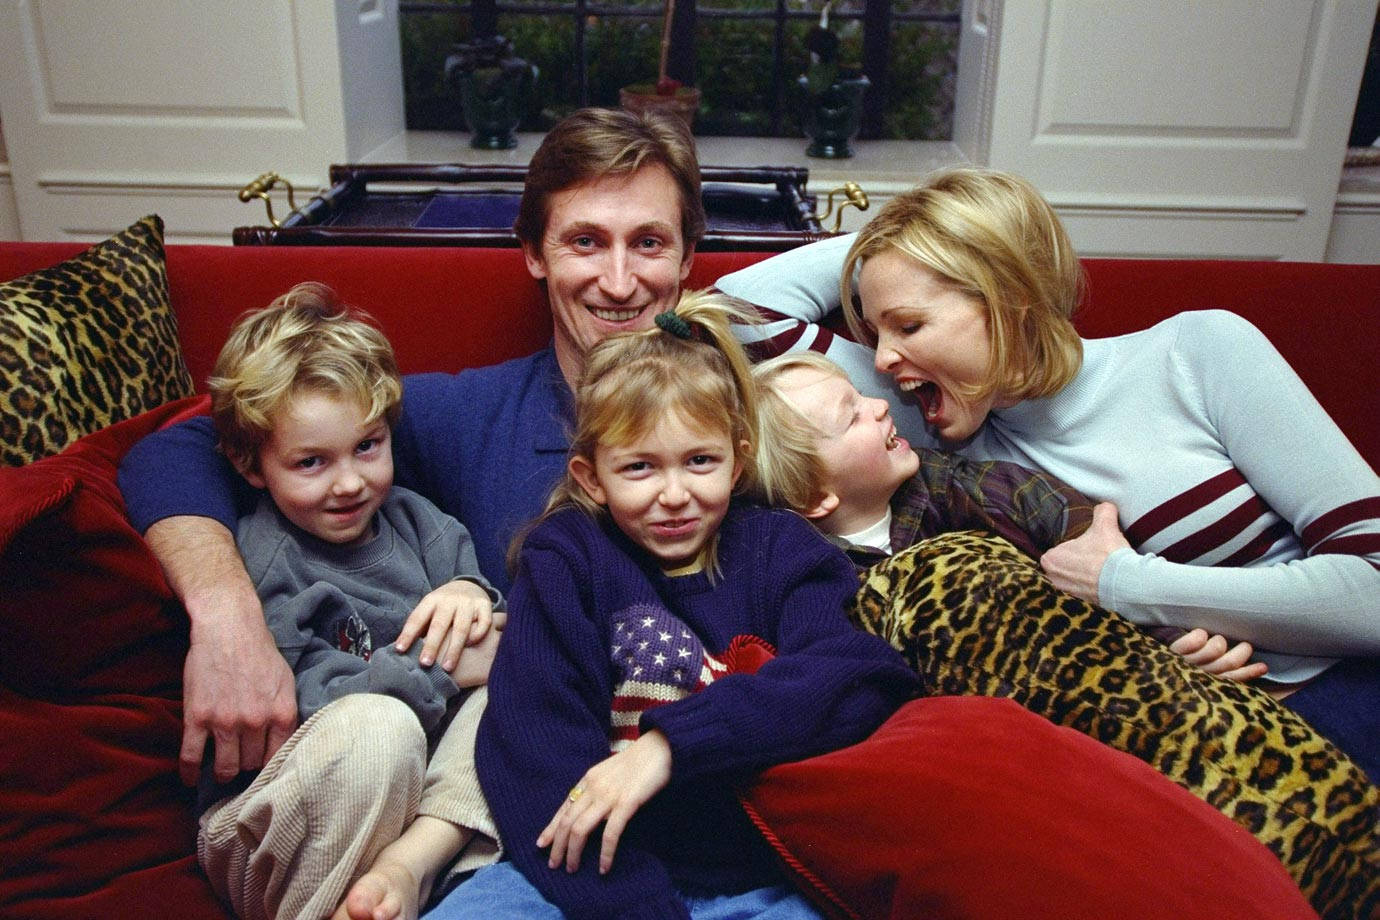 Wayne Gretzky sits with his family, wife Janet and their kids Trevor, Paulina and Ty in 1997.